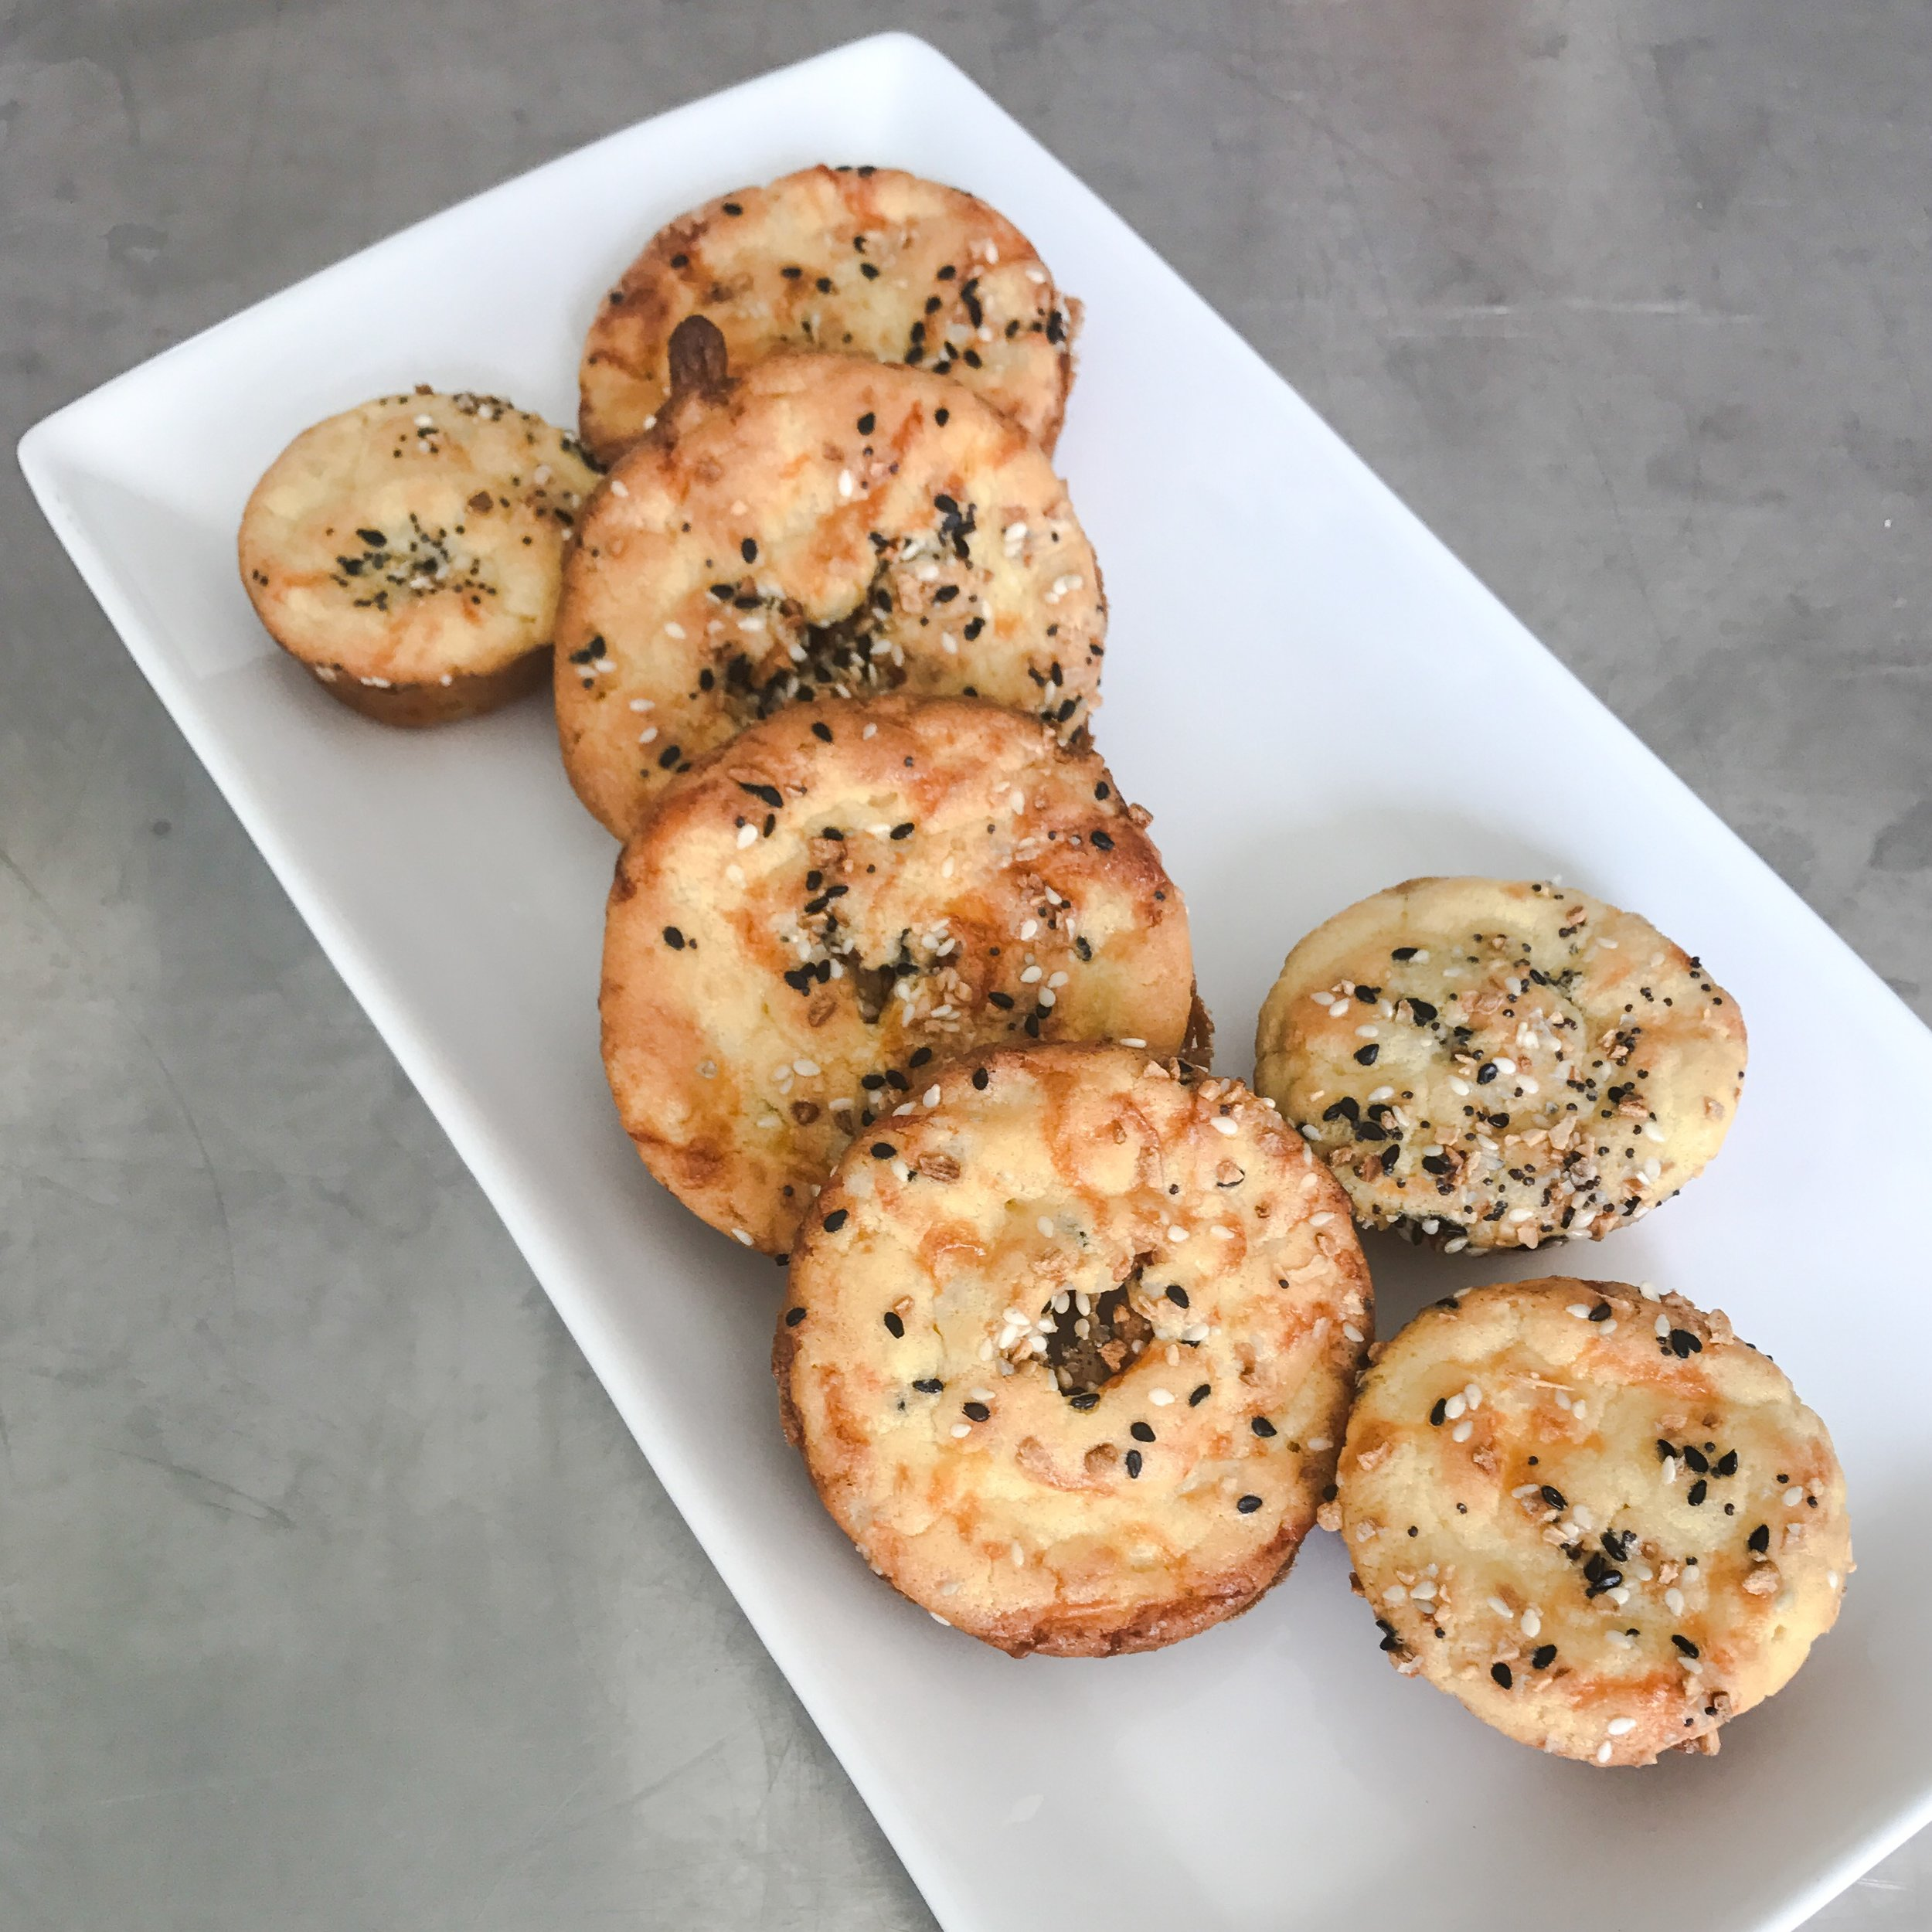 KETO RECIPE: LOW CARB SAVORY CREAM CHEESE MUFFINS WITH EVERYTHING BUT THE BAGEL SEASONING by Jen Fisch via Keto In The City